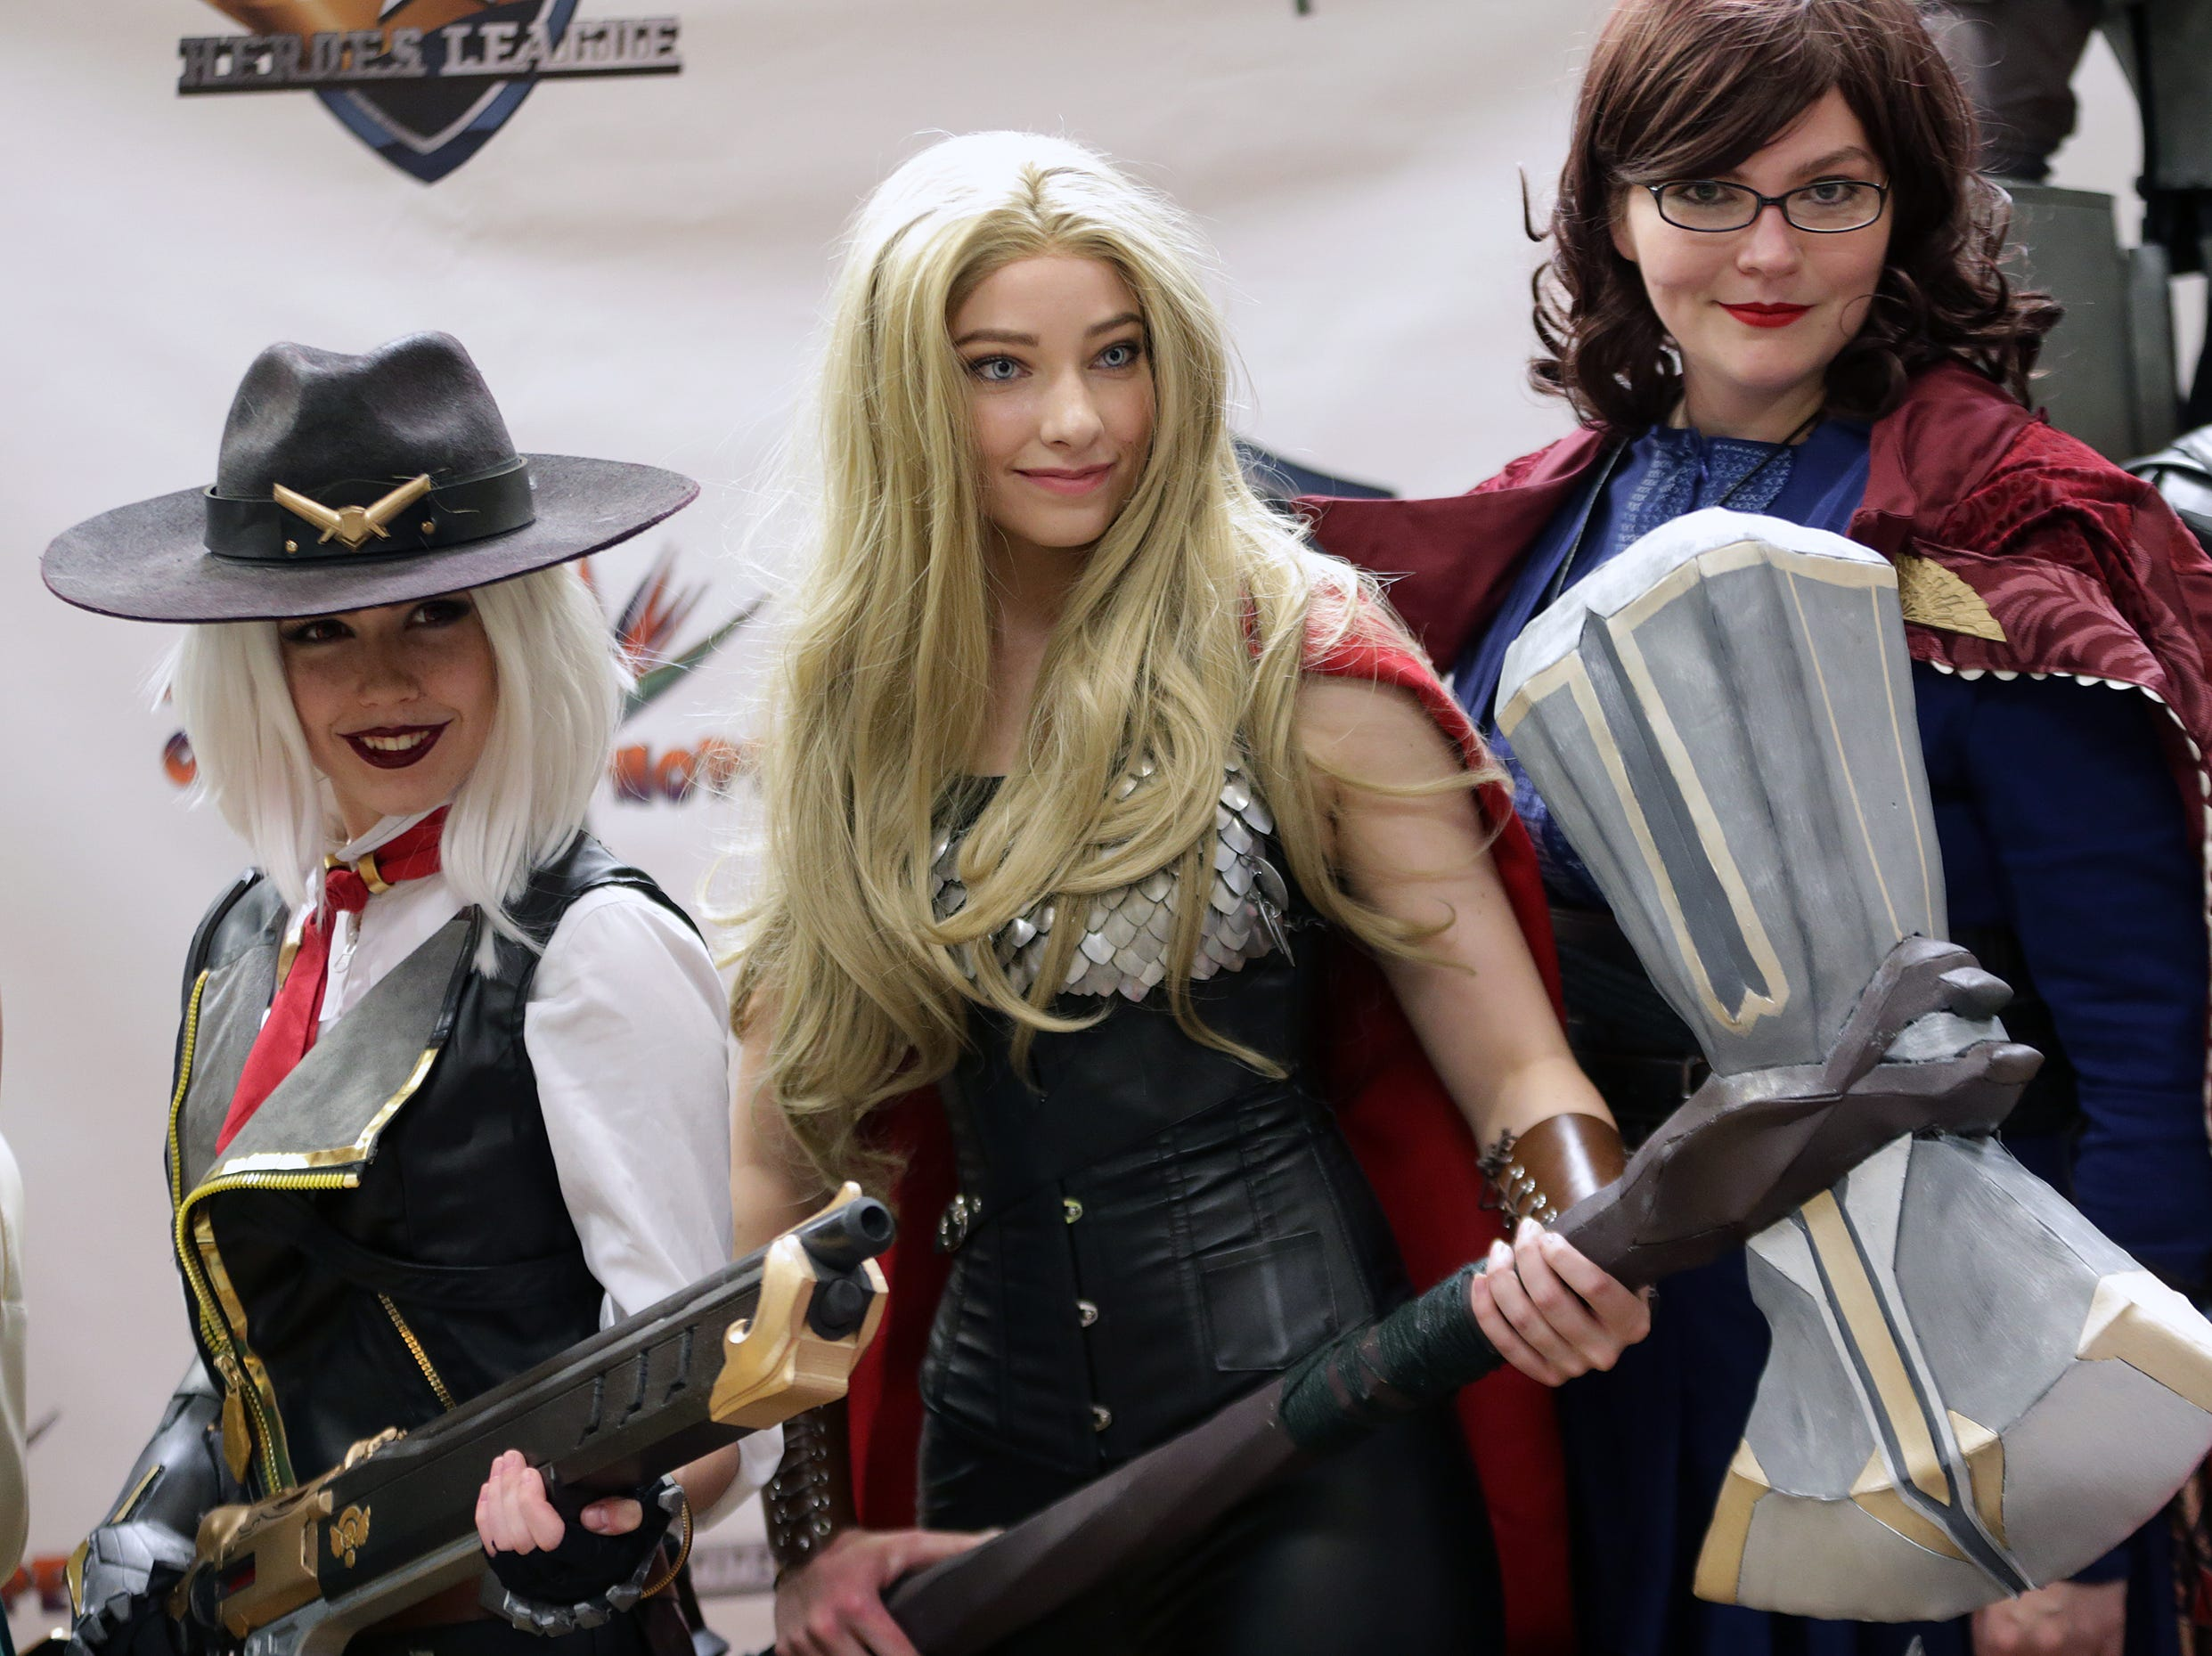 Coronado High School held their first every Coronado Thundercon Saturday. Cosplayer Nadyasonika was transformed into Android 21 by artists Lymari Millot and Marichuy Ortega live during the event.